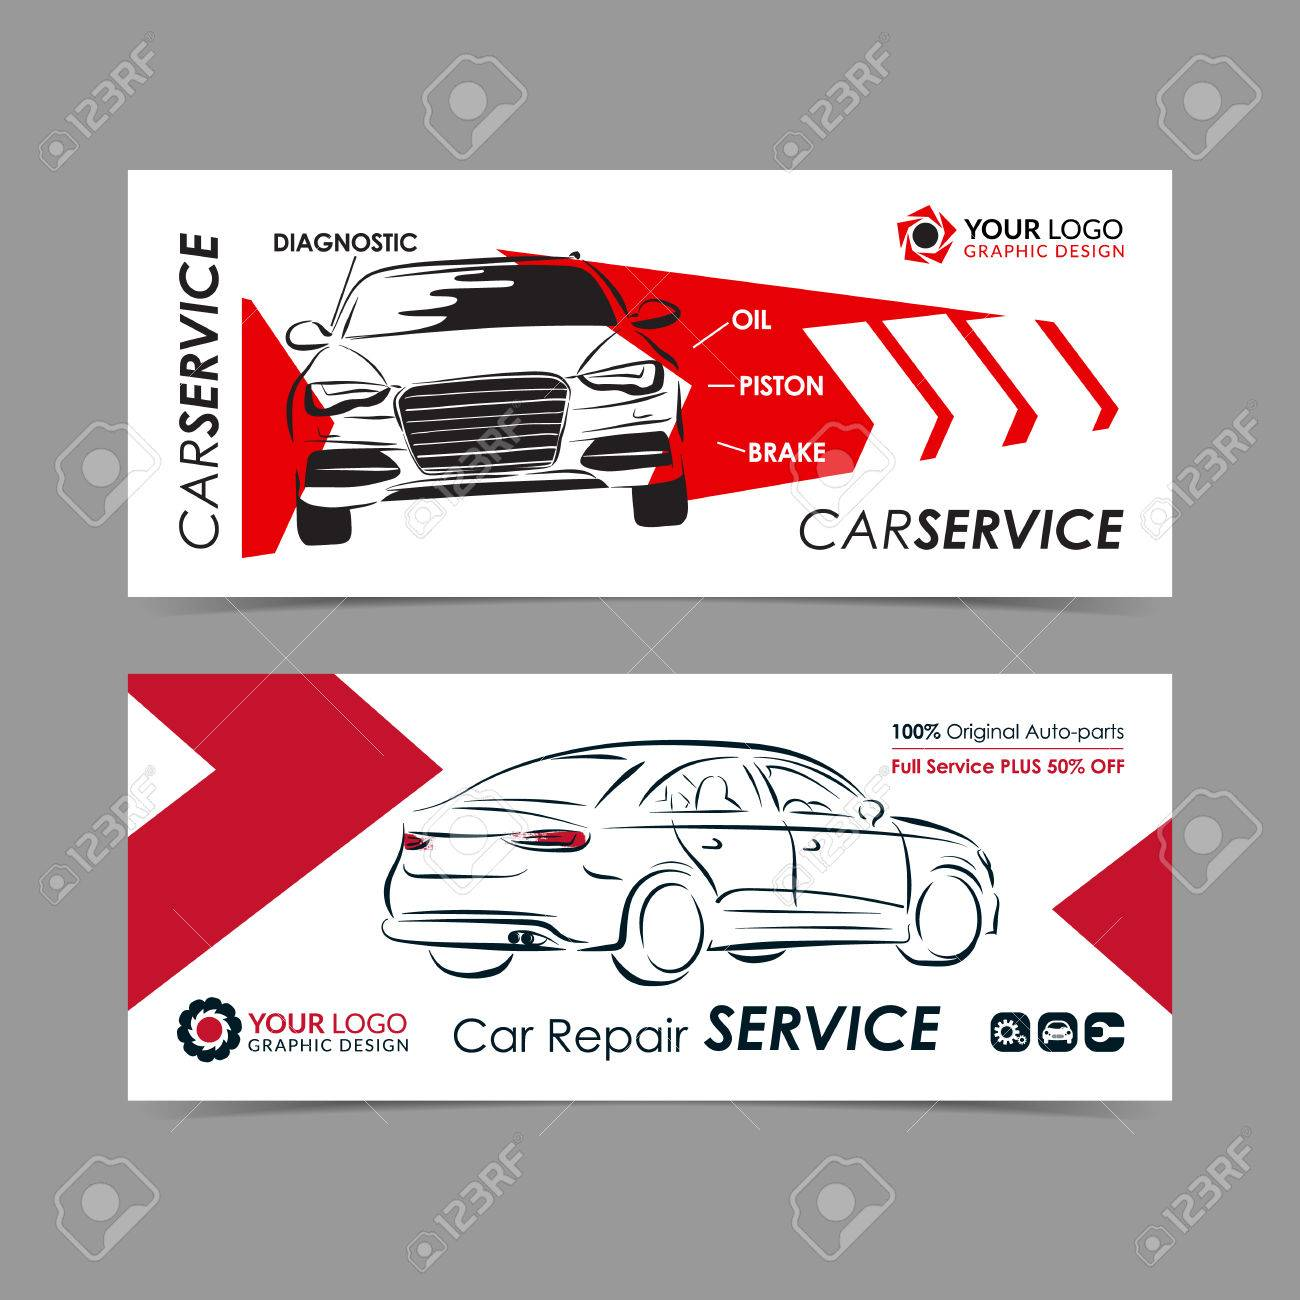 Set Of Auto Repair Service Banner Poster Flyer Car Service Royalty Free Cliparts Vectors And Stock Illustration Image 72576191